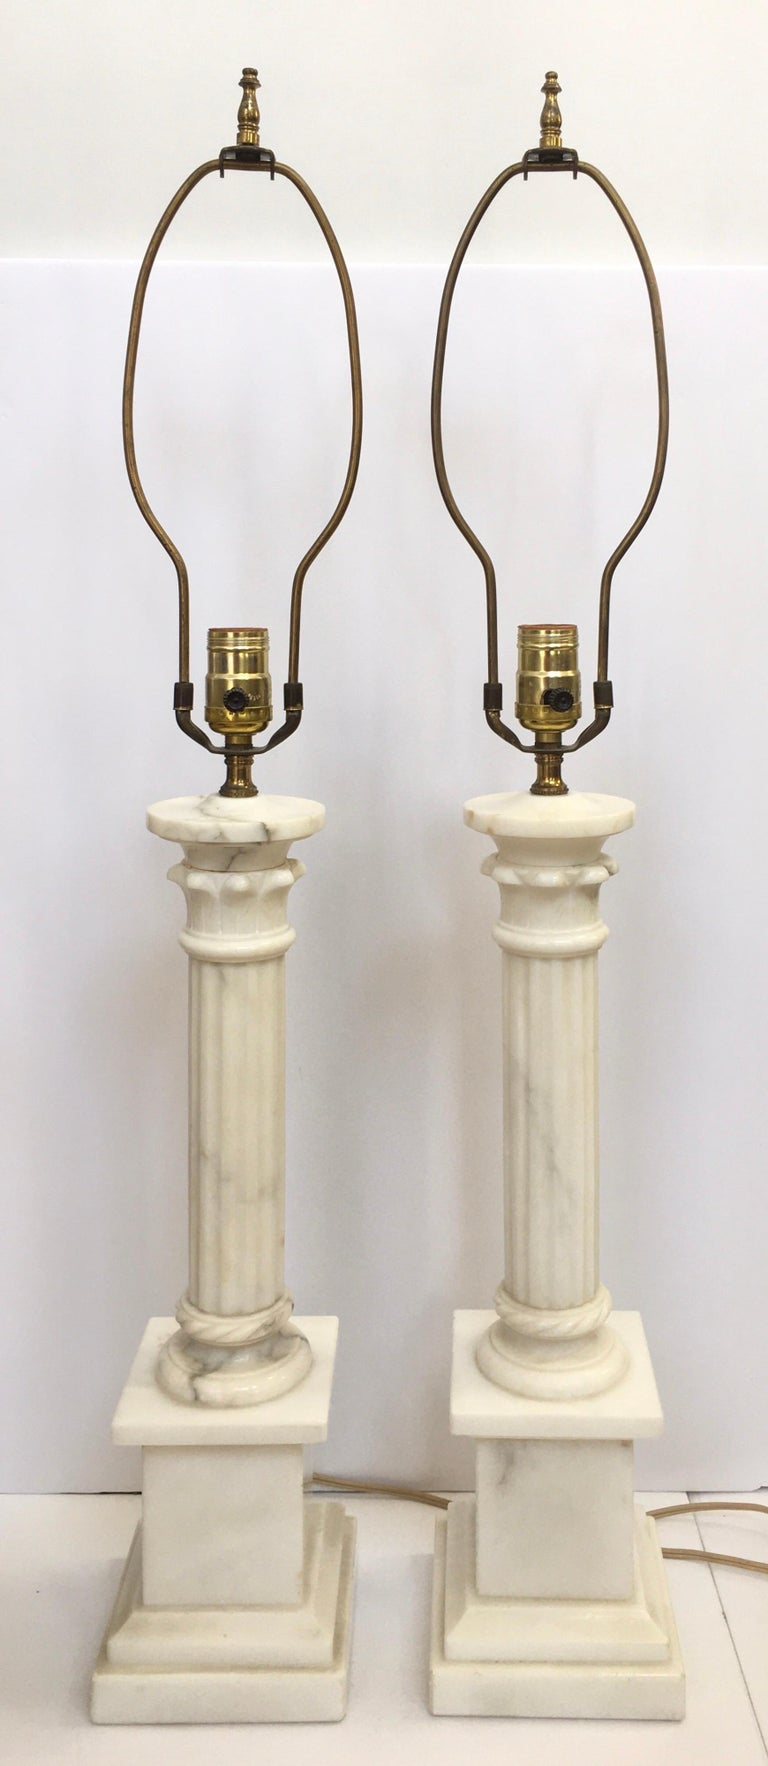 Pair of classic neoclassical style 'ionic column' solid marble pillar table lamps. These tall buffet lamps feature polished white marble with grey veining. Beautifully carved fluted columns are mounted on square plinth bases. Lamp shades not